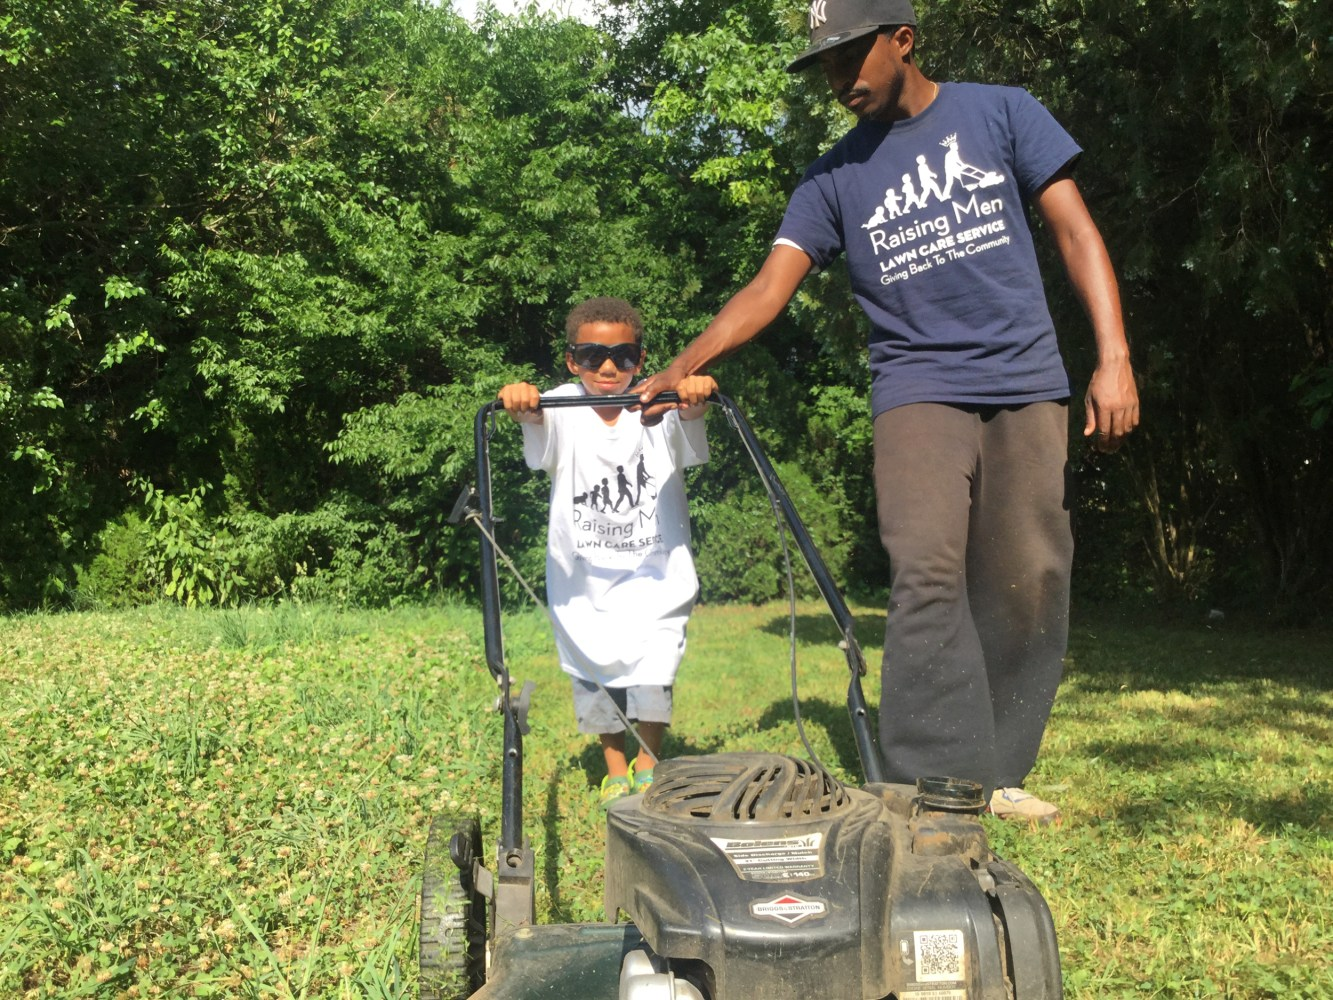 image rodney smith jr helps a young volunteer with raising men lawn